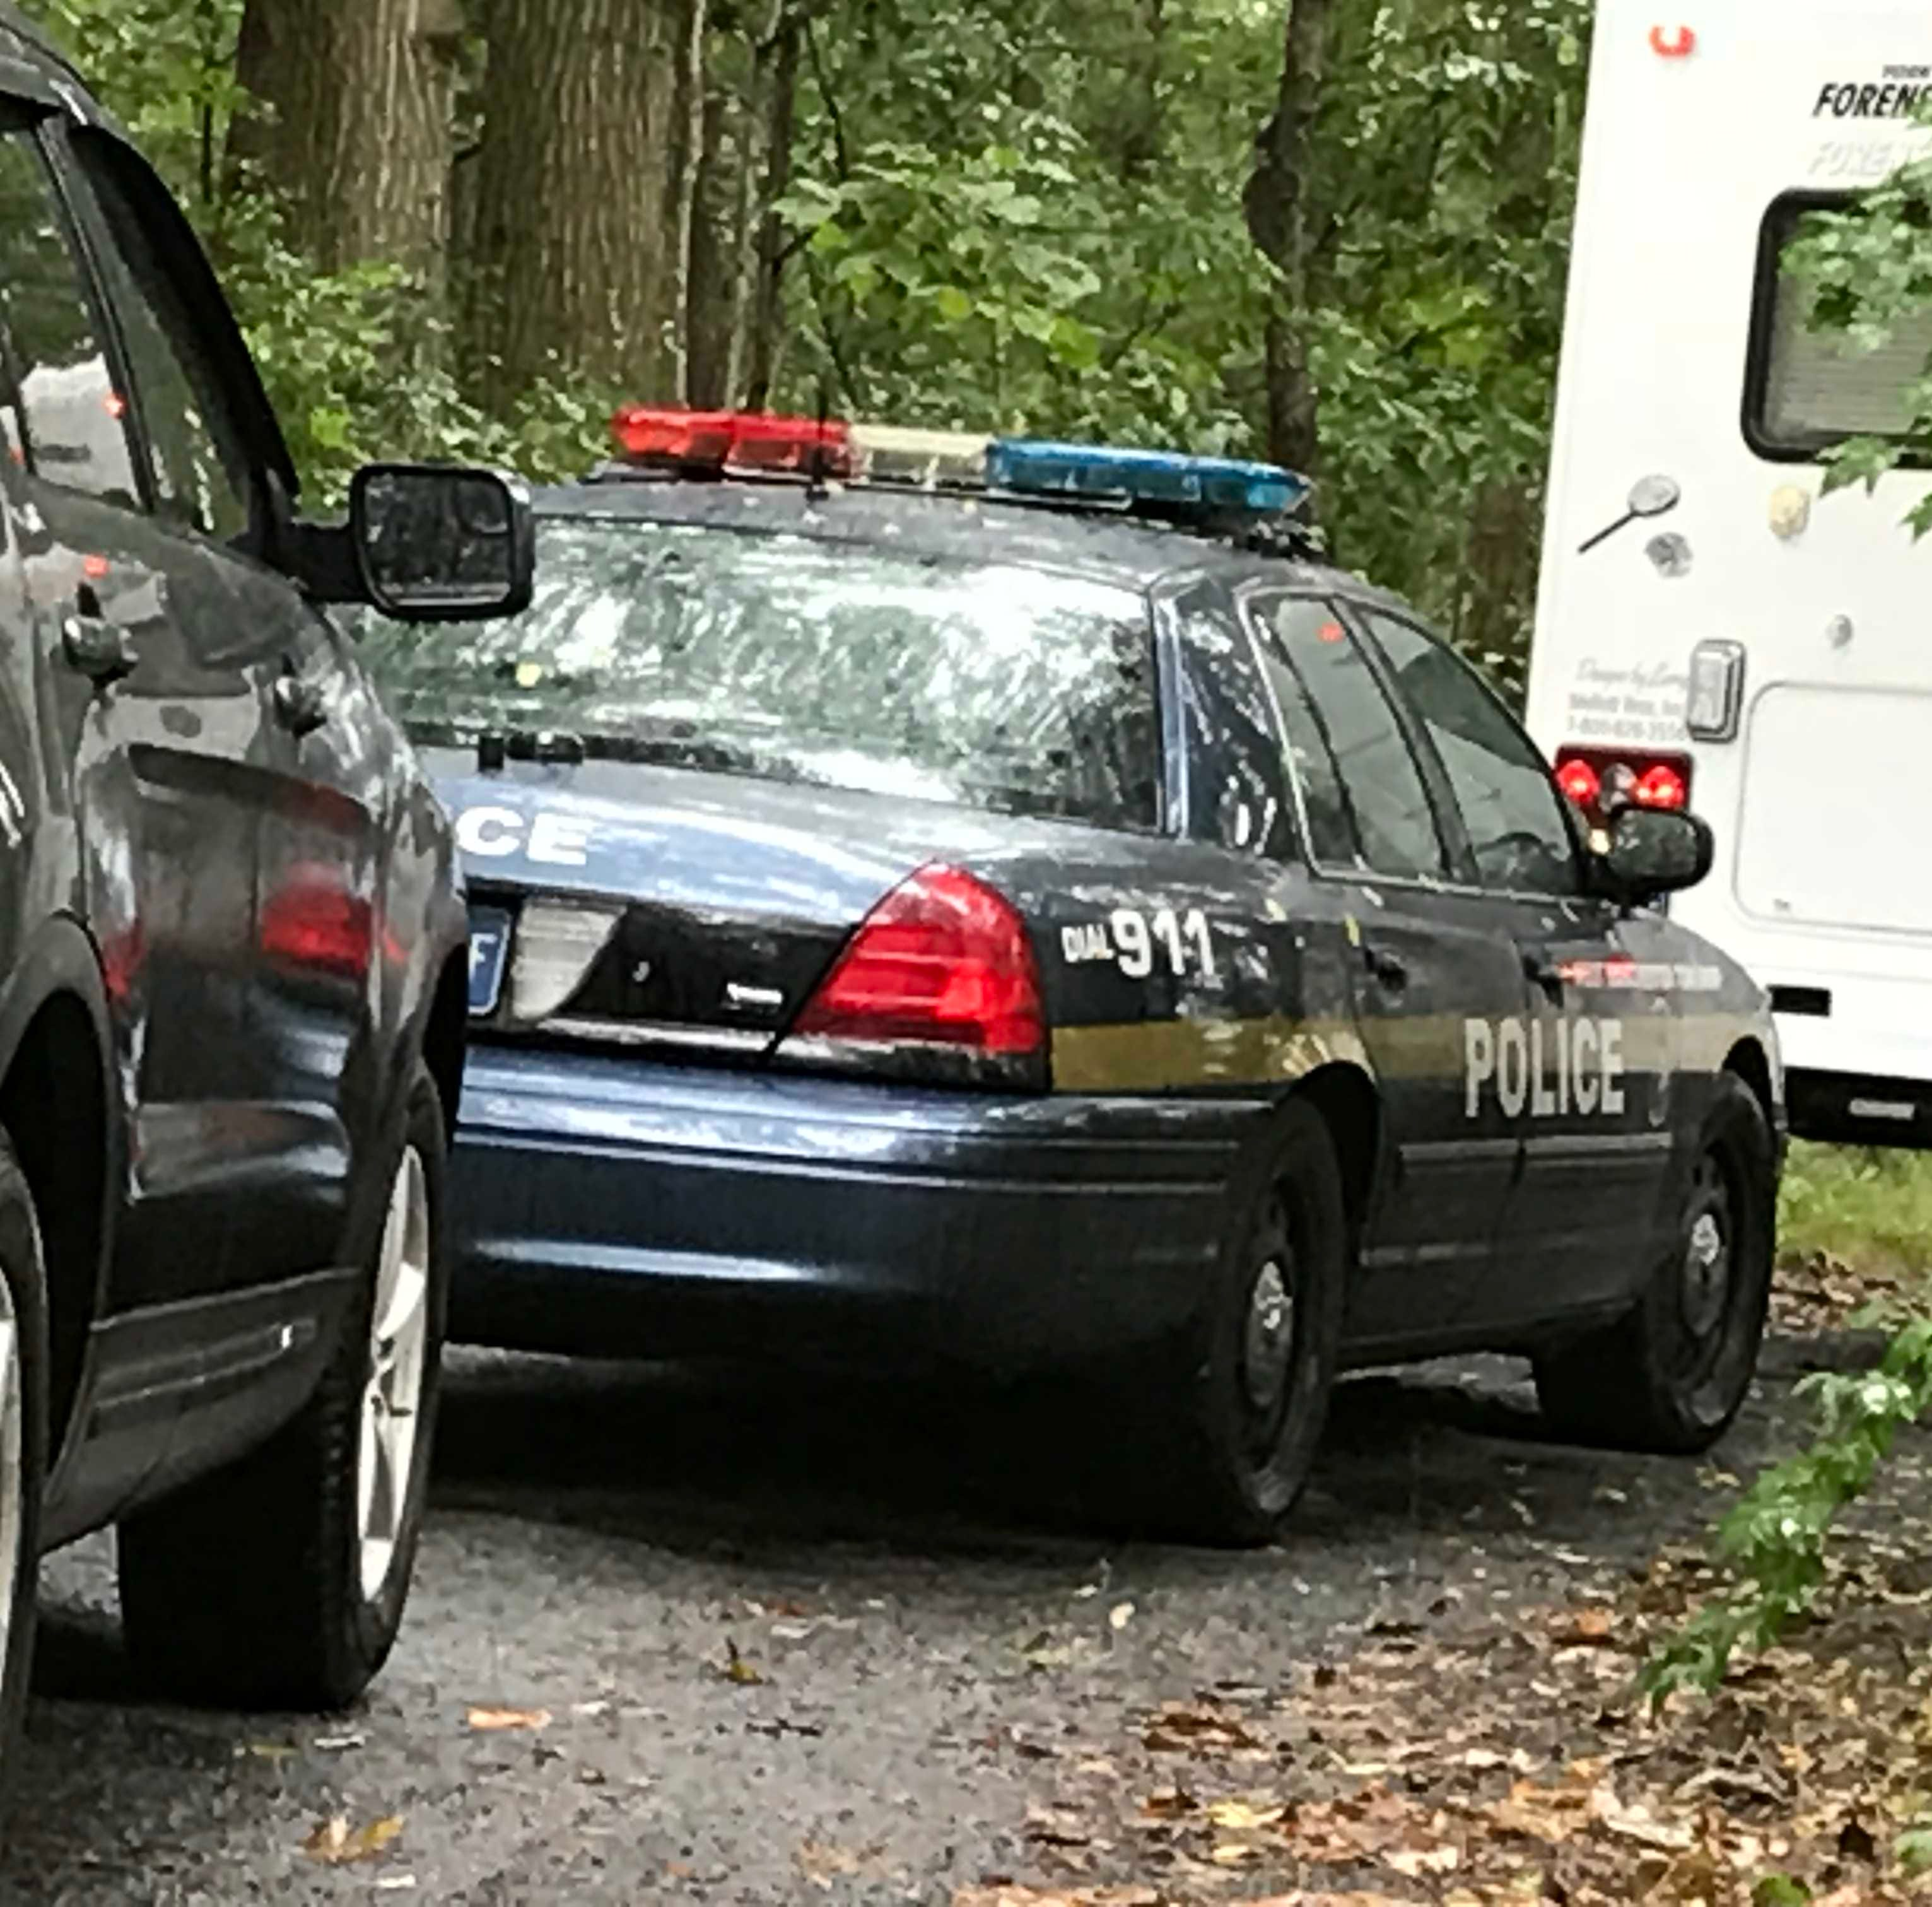 Police are investigating an early Sunday morning shooting in the 1700 block of Winters Road, Lower Windsor Township.